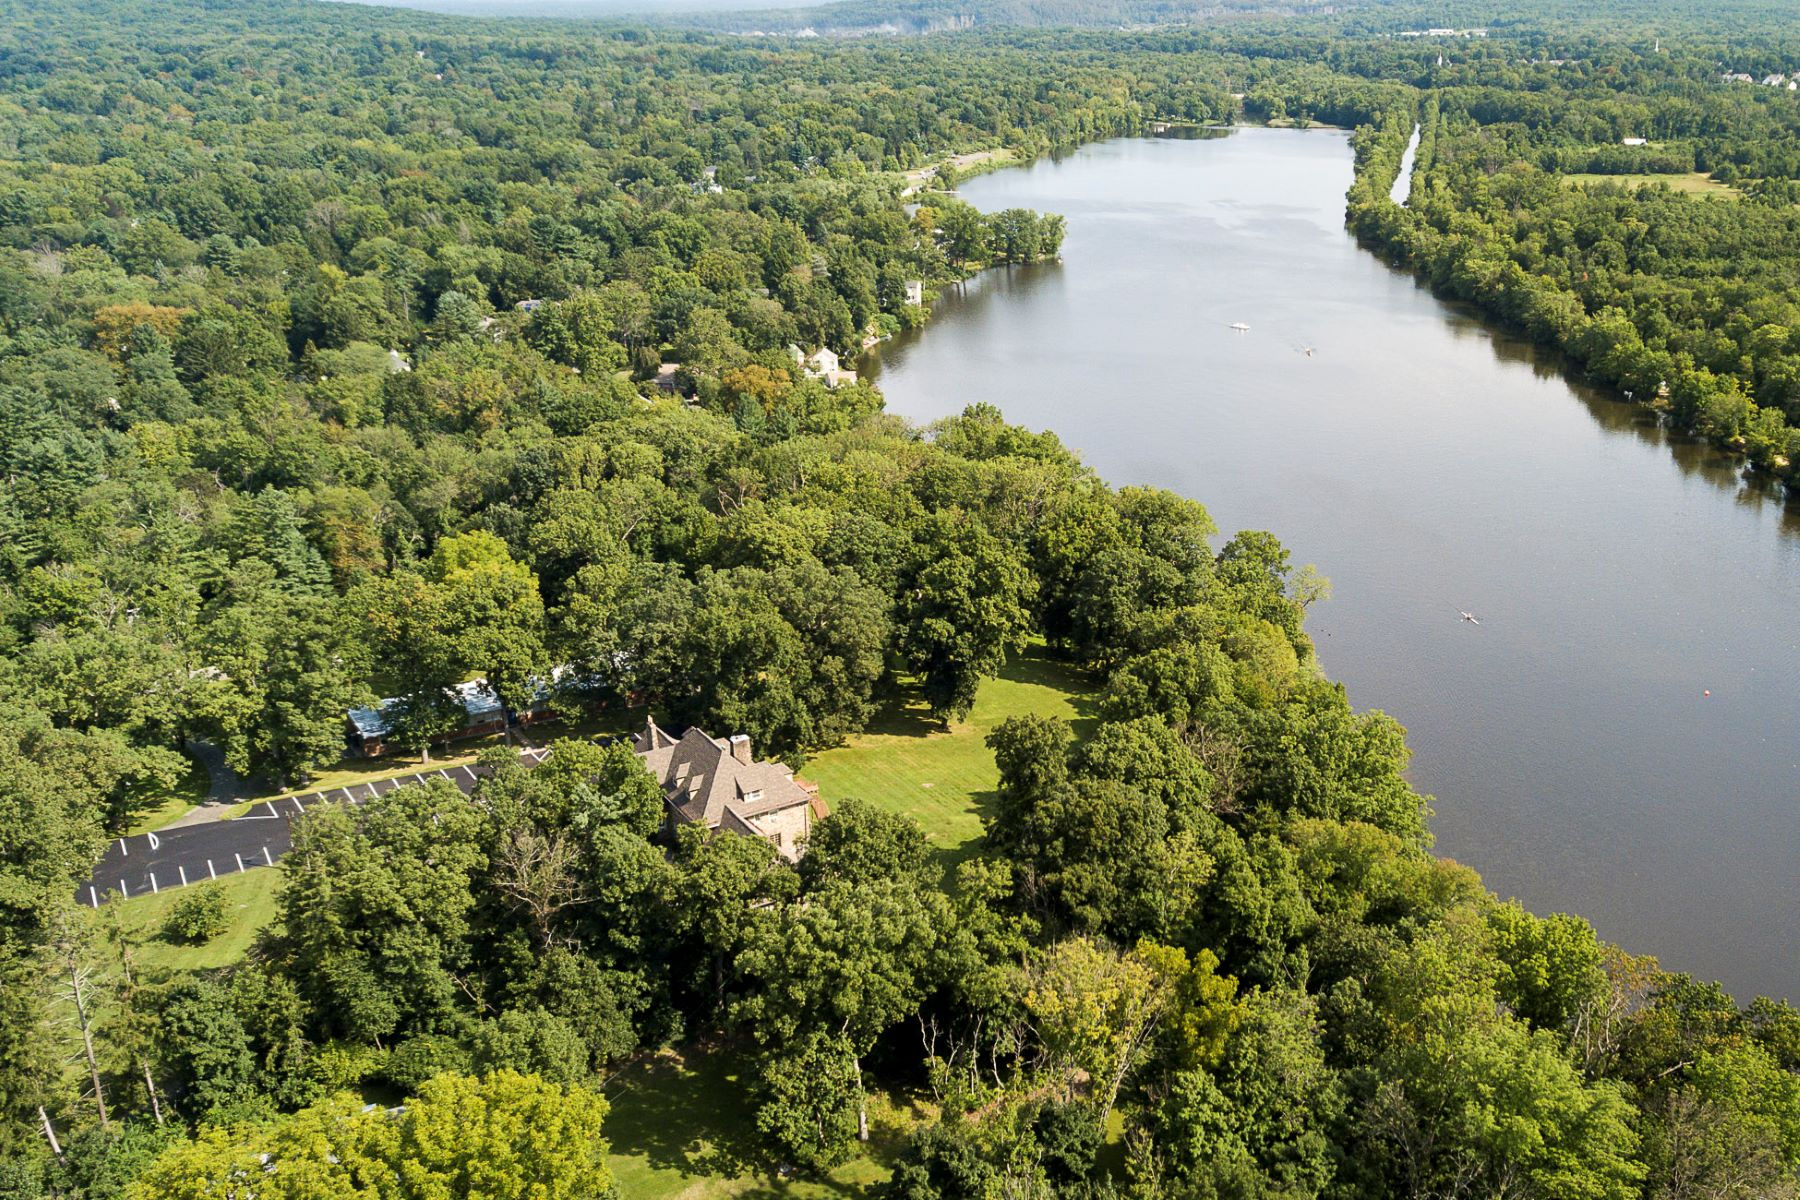 Property for Sale at Unprecedented Lake-Front Development Opportunity 601 Prospect Avenue, Princeton, New Jersey 08540 United States